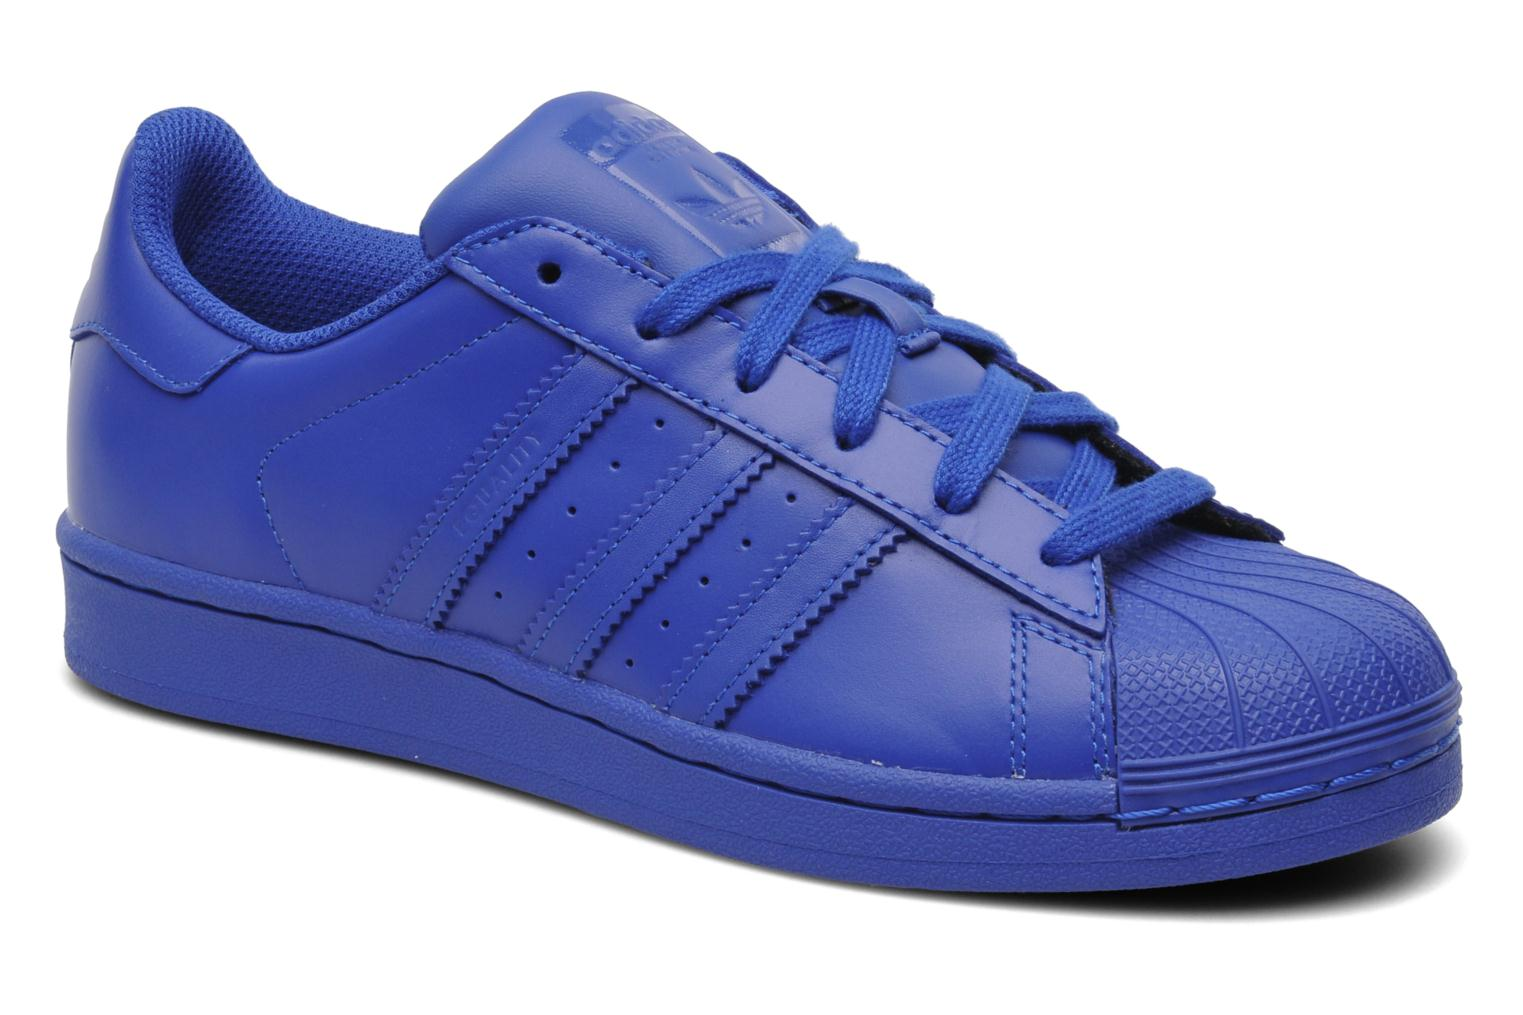 chaussures adidas superstar bleu. Black Bedroom Furniture Sets. Home Design Ideas